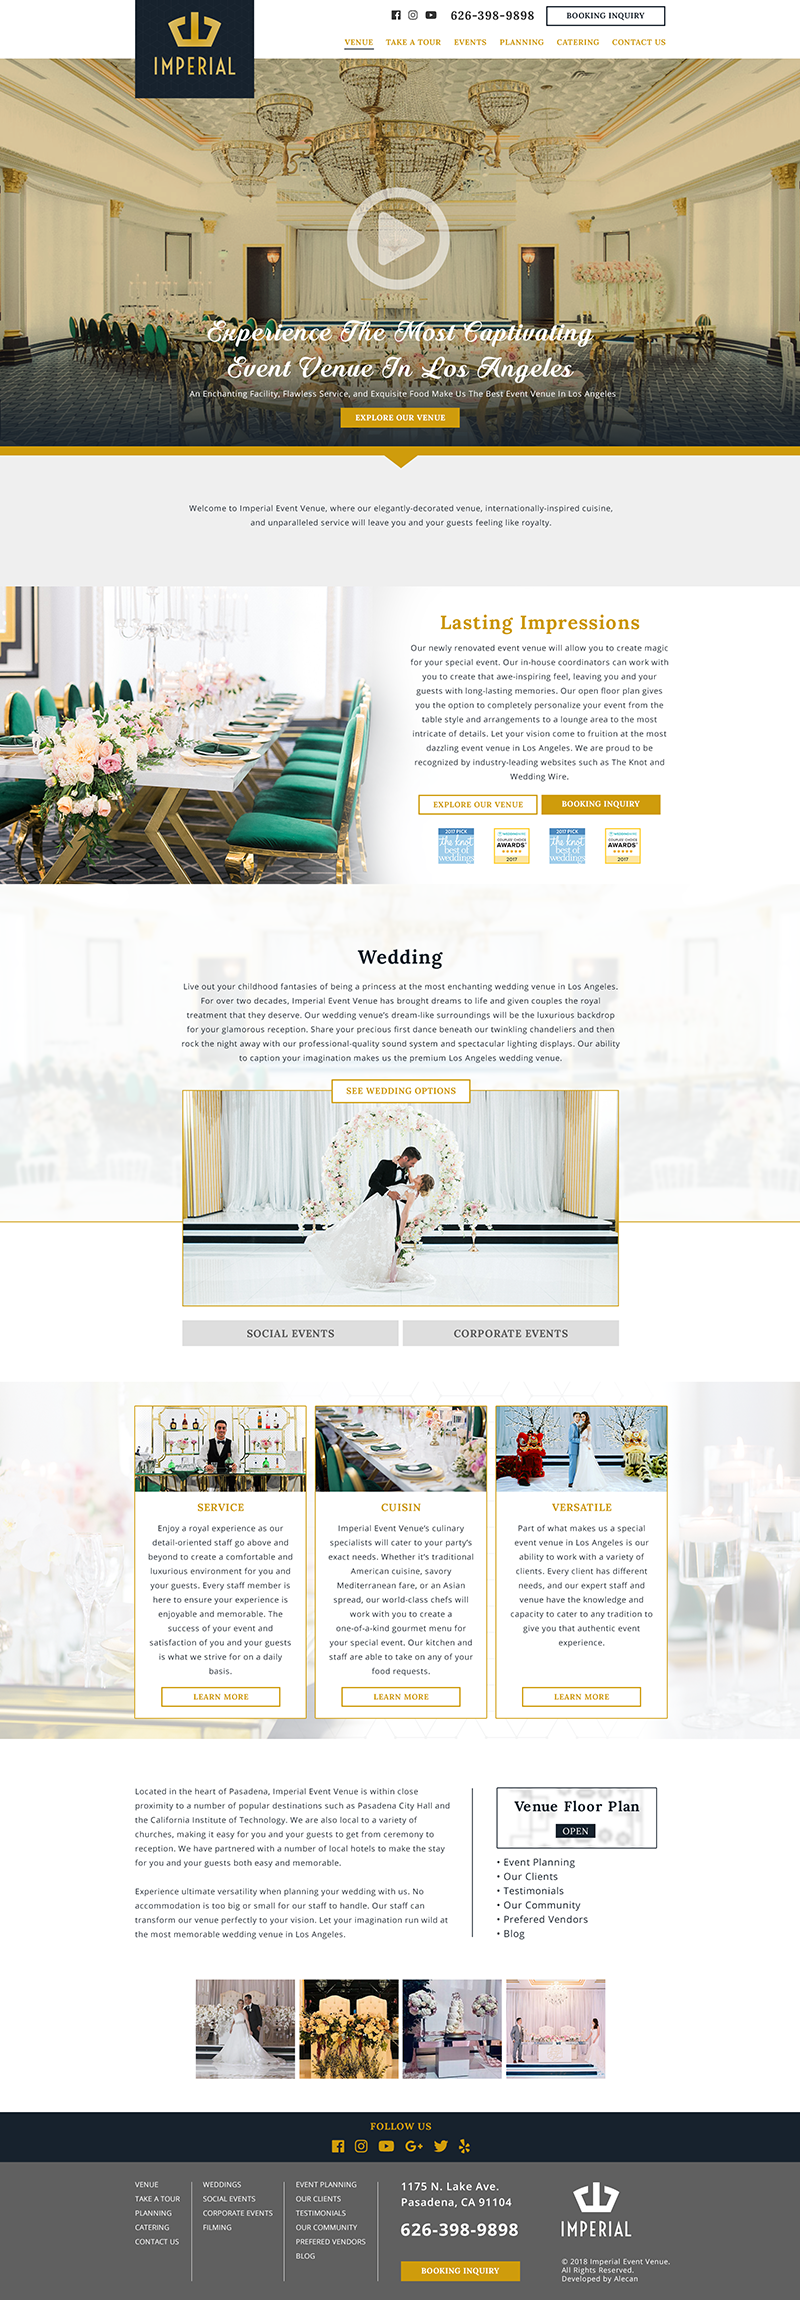 Web Development - Imperial Event Venue